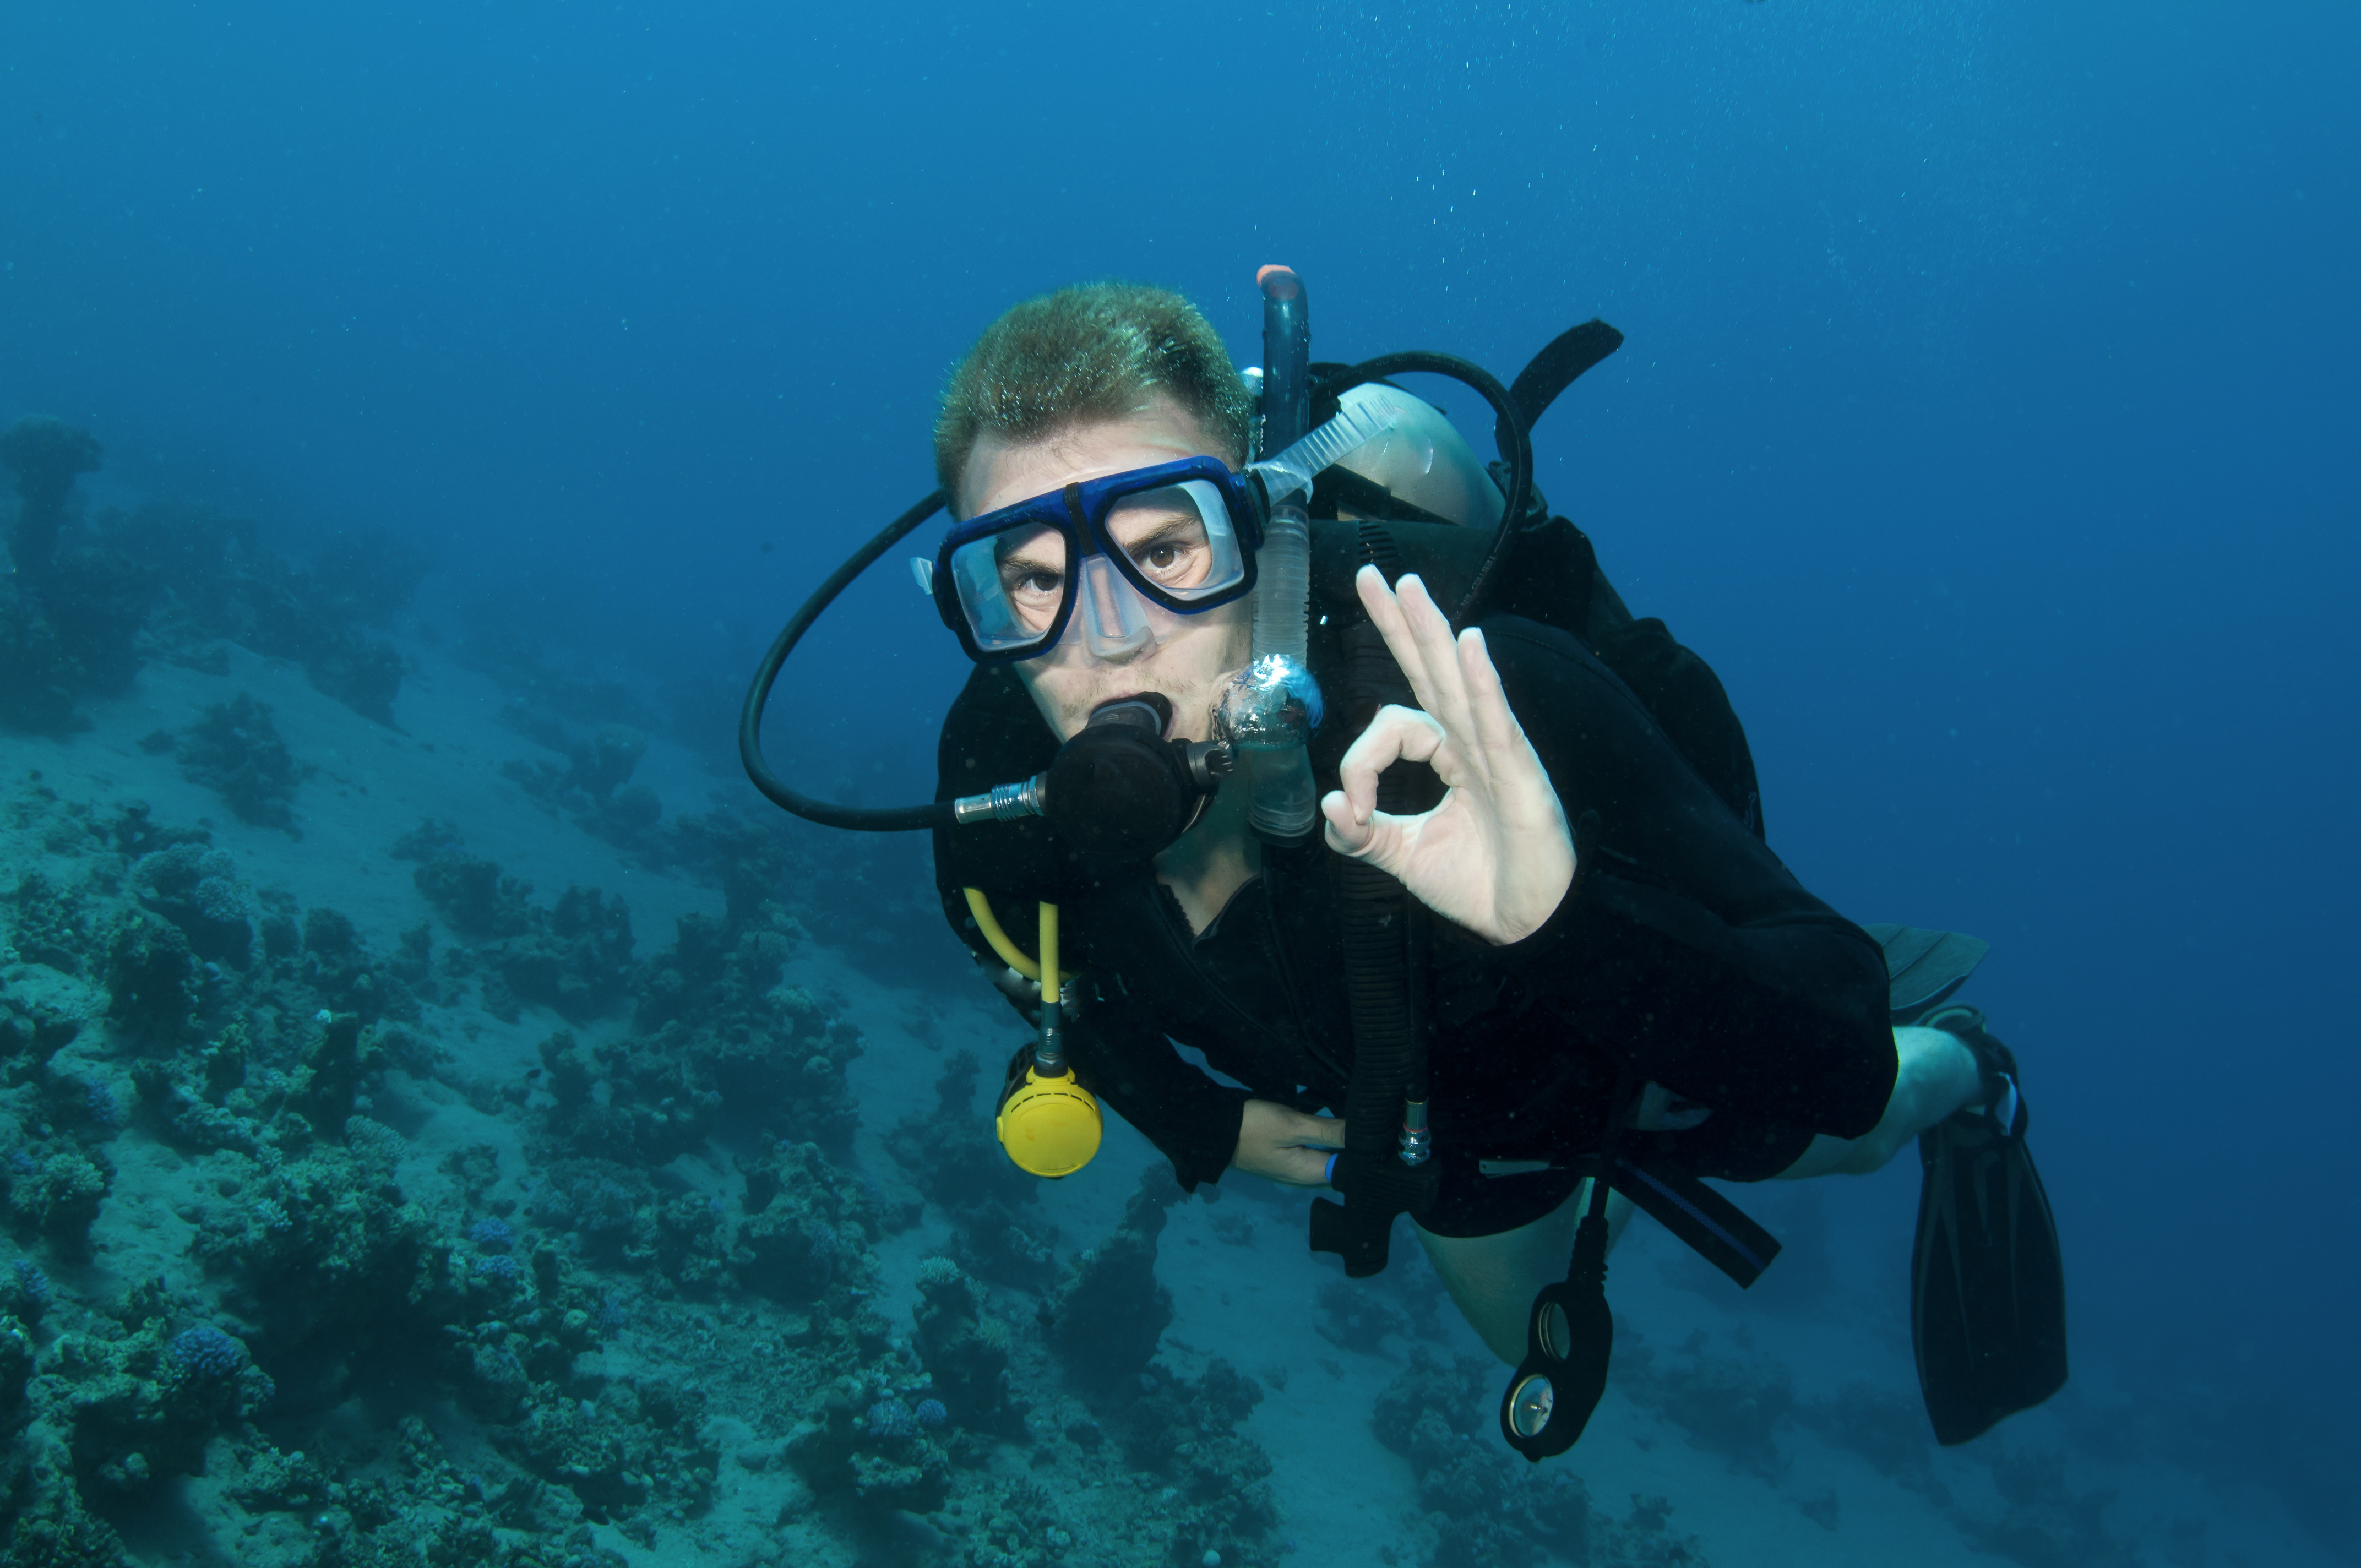 an analysis of the physics of scuba diving Why become a scuba instructor why roatan why coconut tree divers testimonials life as an instructor blog  physics of diving part 1.